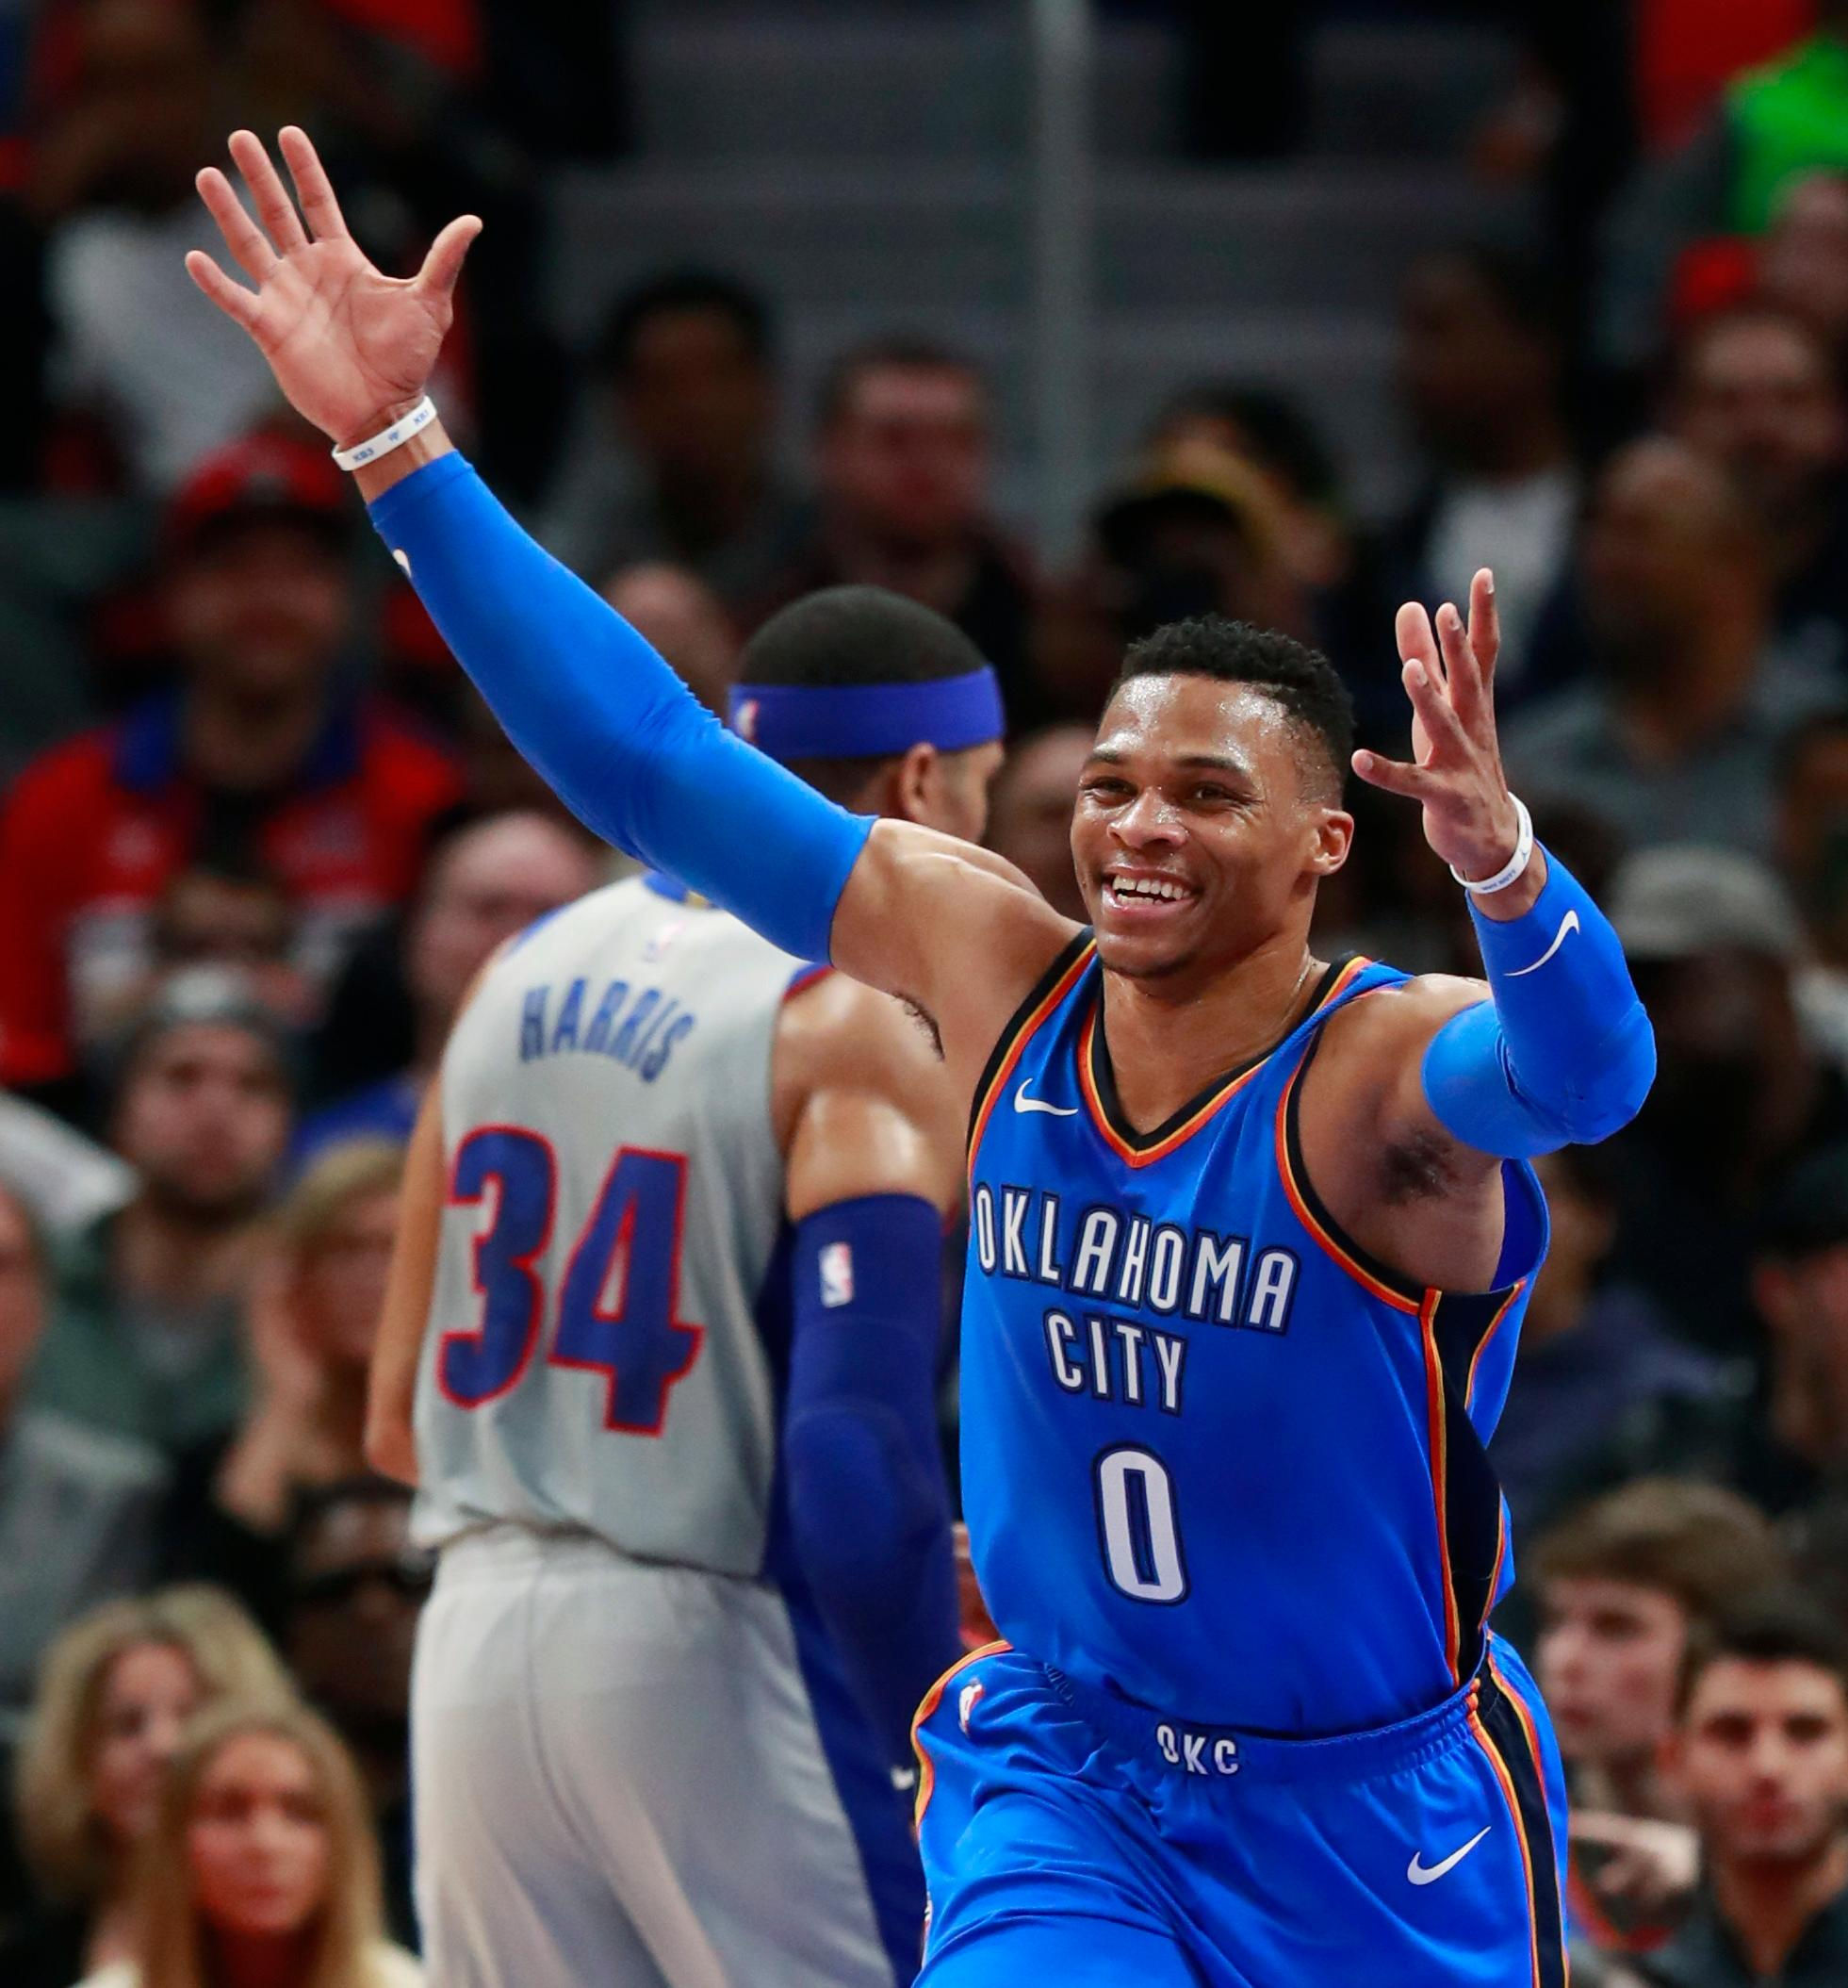 Oklahoma City Thunder guard Russell Westbrook (0) reacts after a play during the first half of the team's NBA basketball game against the Detroit Pistons, Saturday, Jan. 27, 2018, in Detroit. (AP Photo/Carlos Osorio)